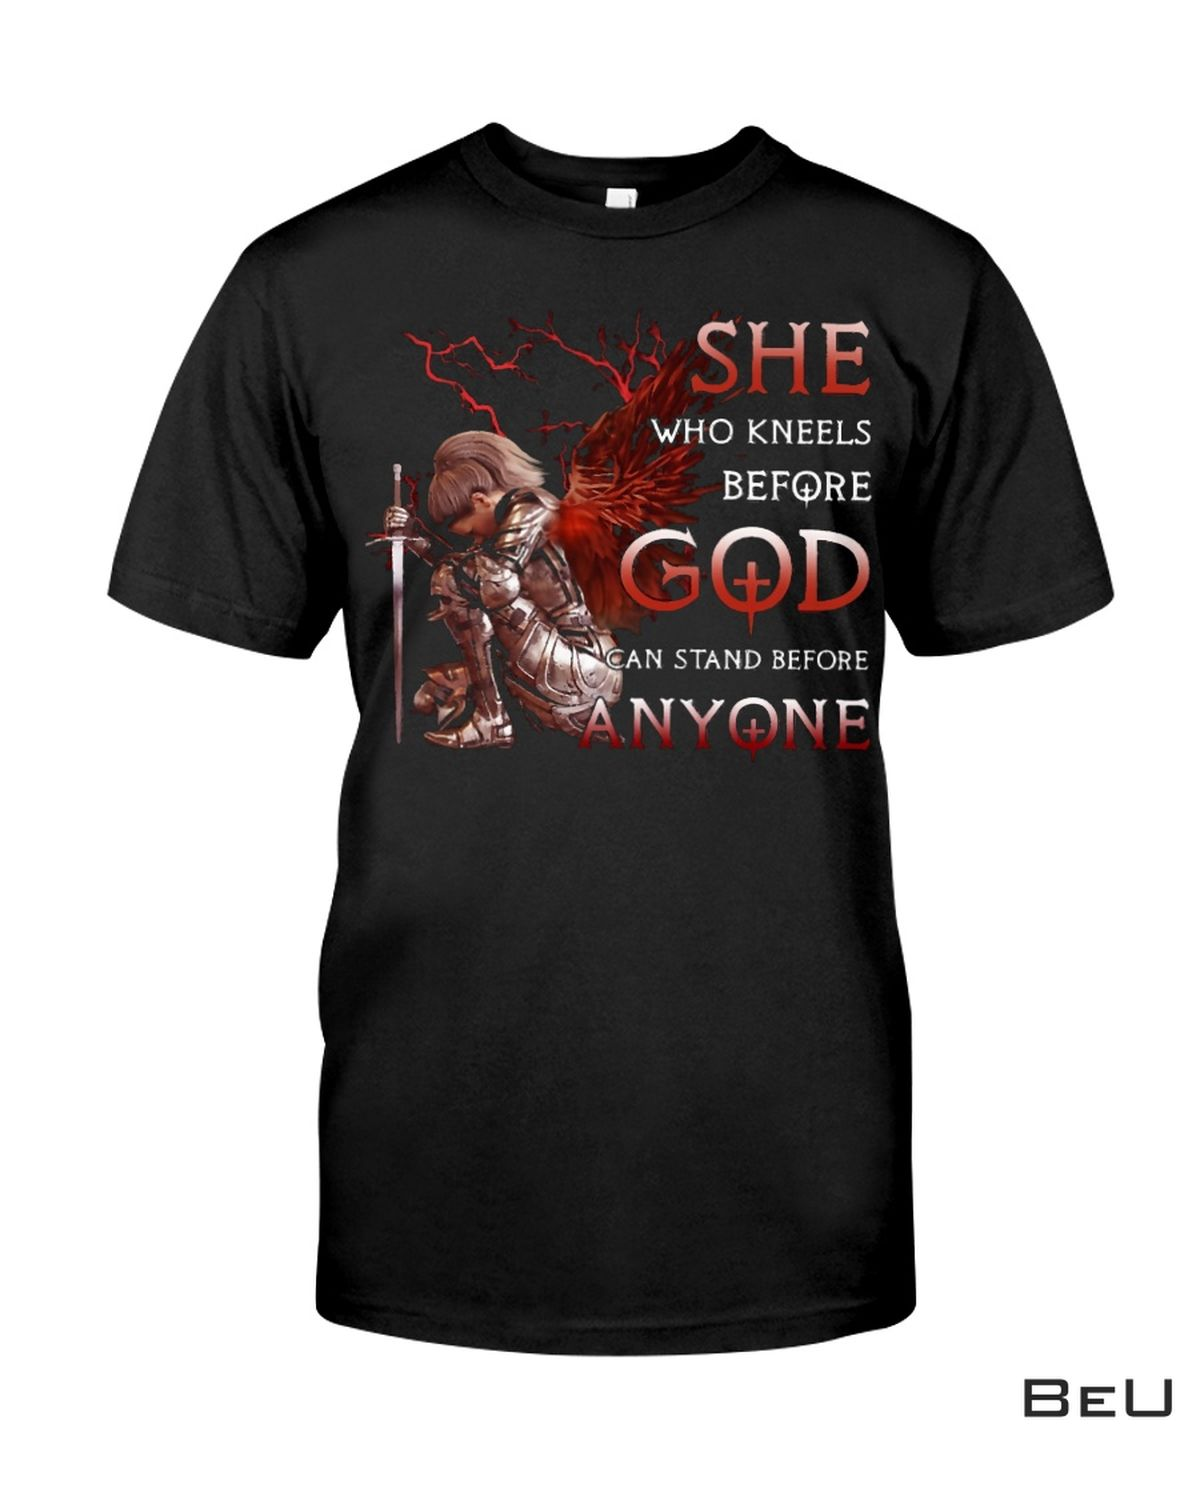 Kneels Before God And Stand Before Anyone Shirt, Hoodie, Tank Top